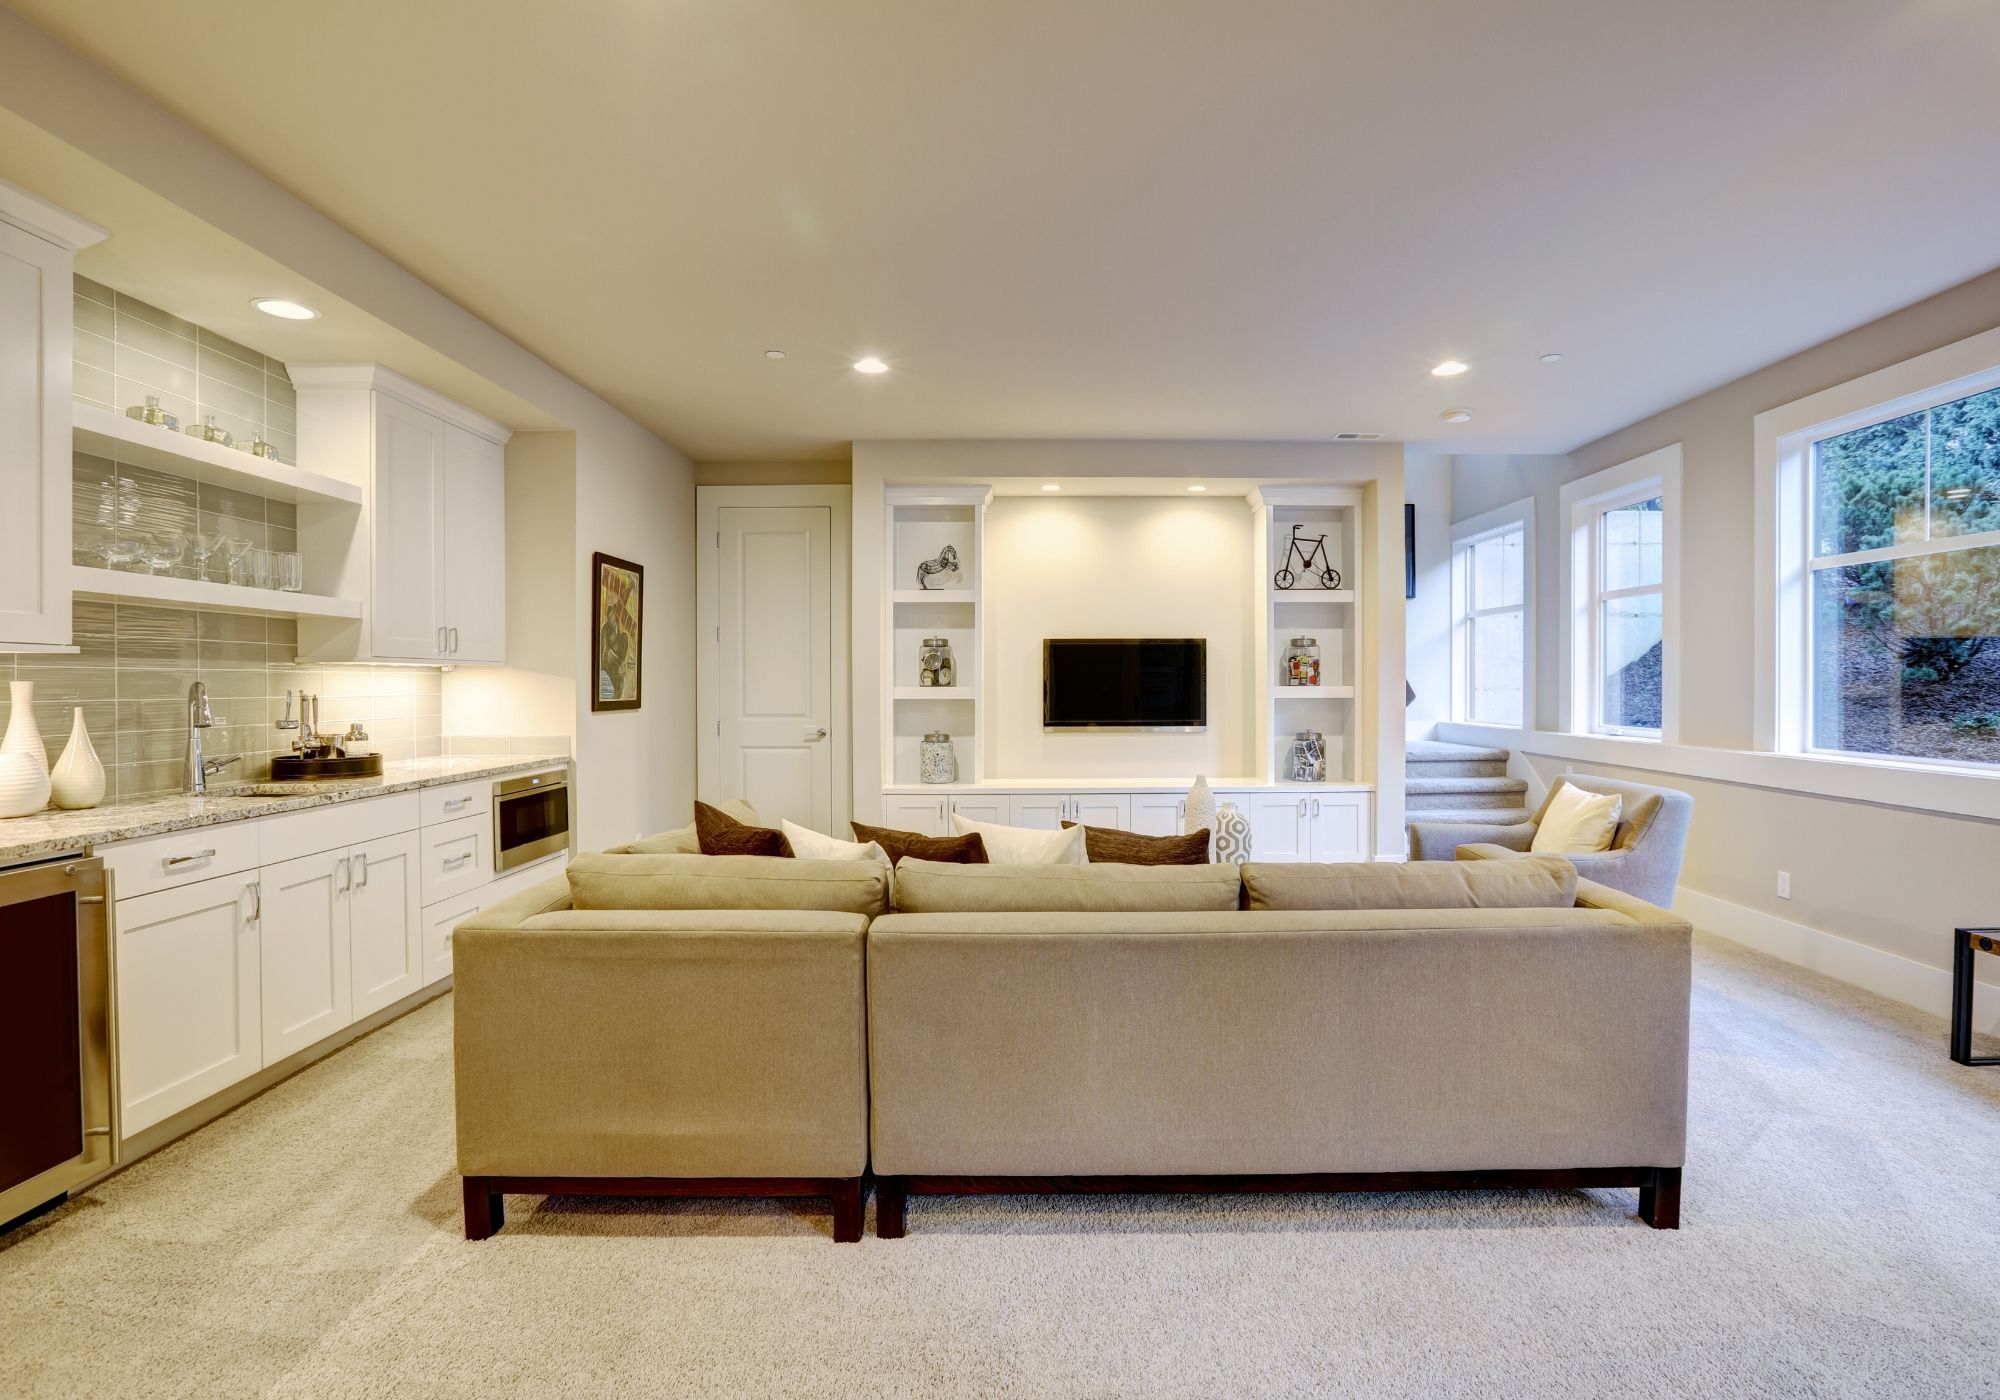 Best Basement Remodeling Ideas For Additional Living Space